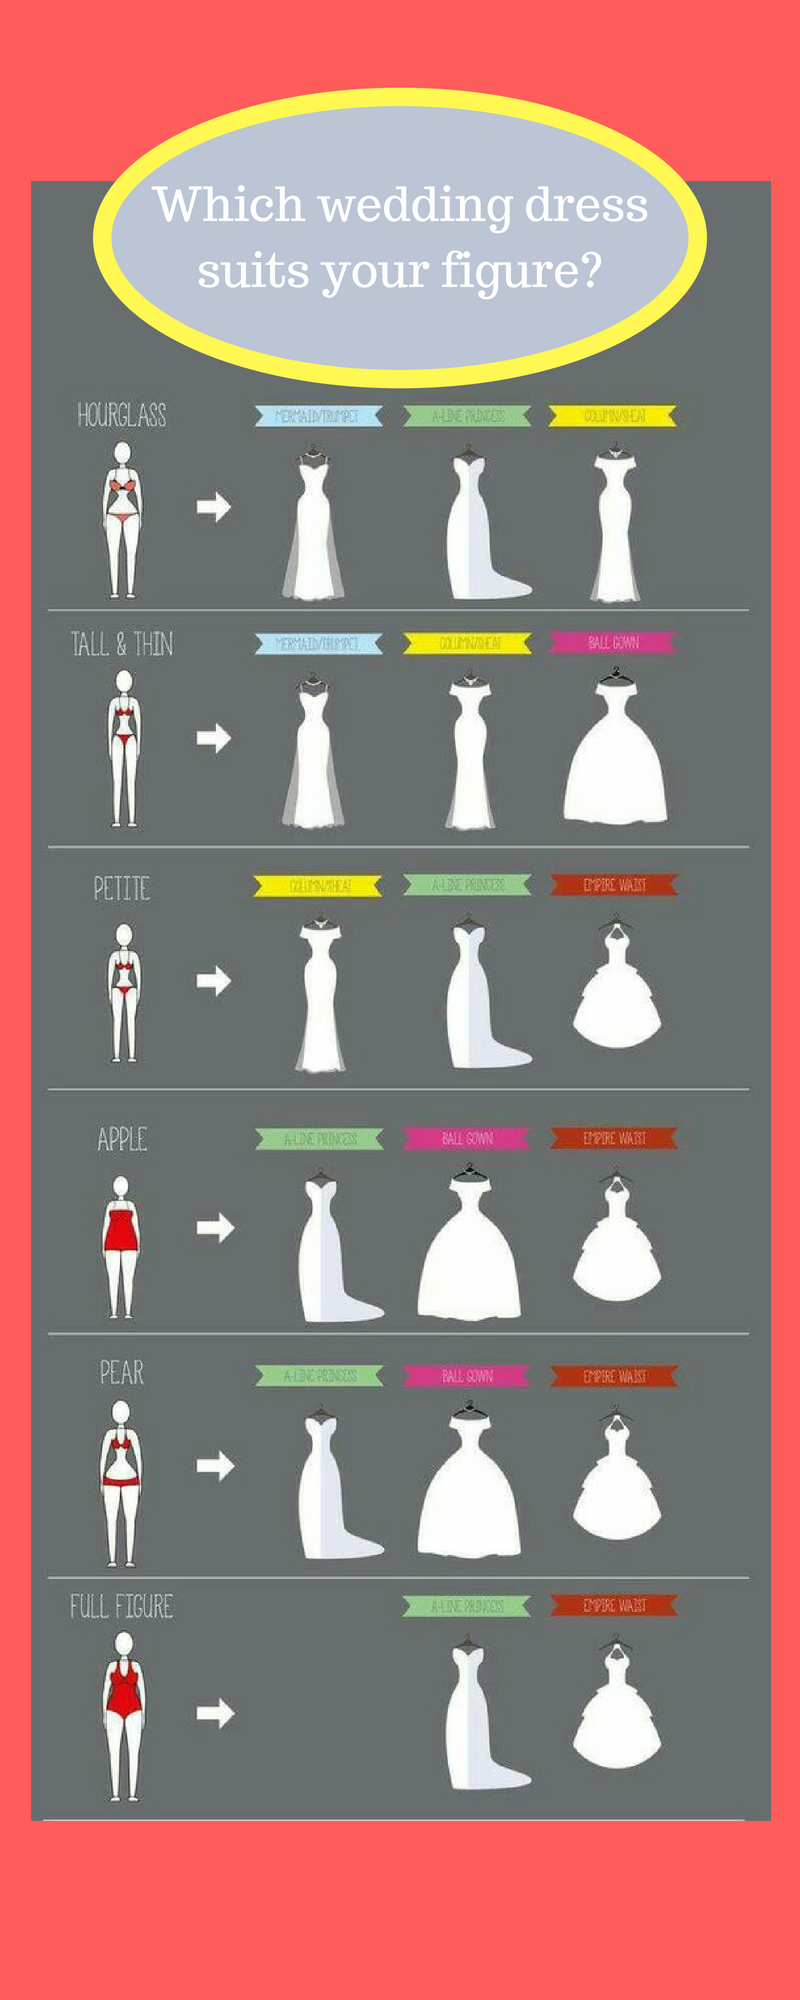 Choosing a Wedding Dress to Suit your Style, Size or budget